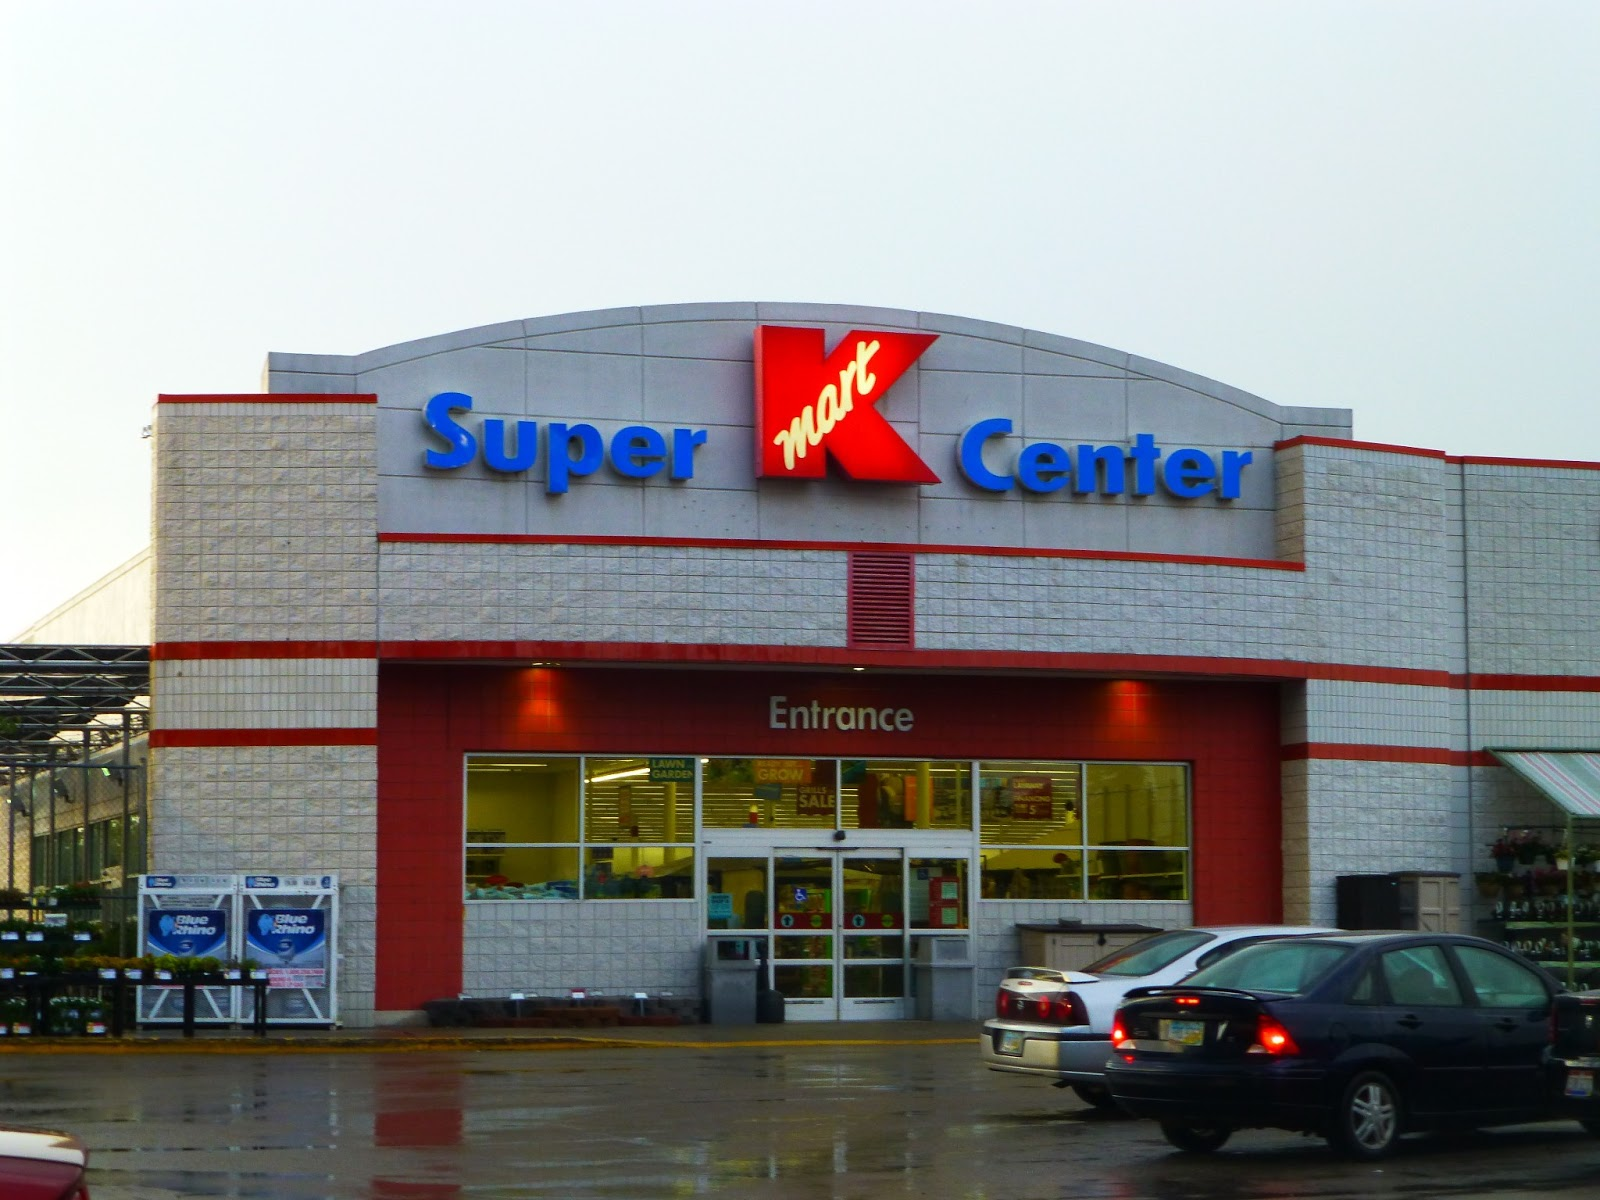 Super Kmart Center - groceries, clothing, electronics, toys, and so much more! Come see our fresh deli, bakery, produce, and meat departments.